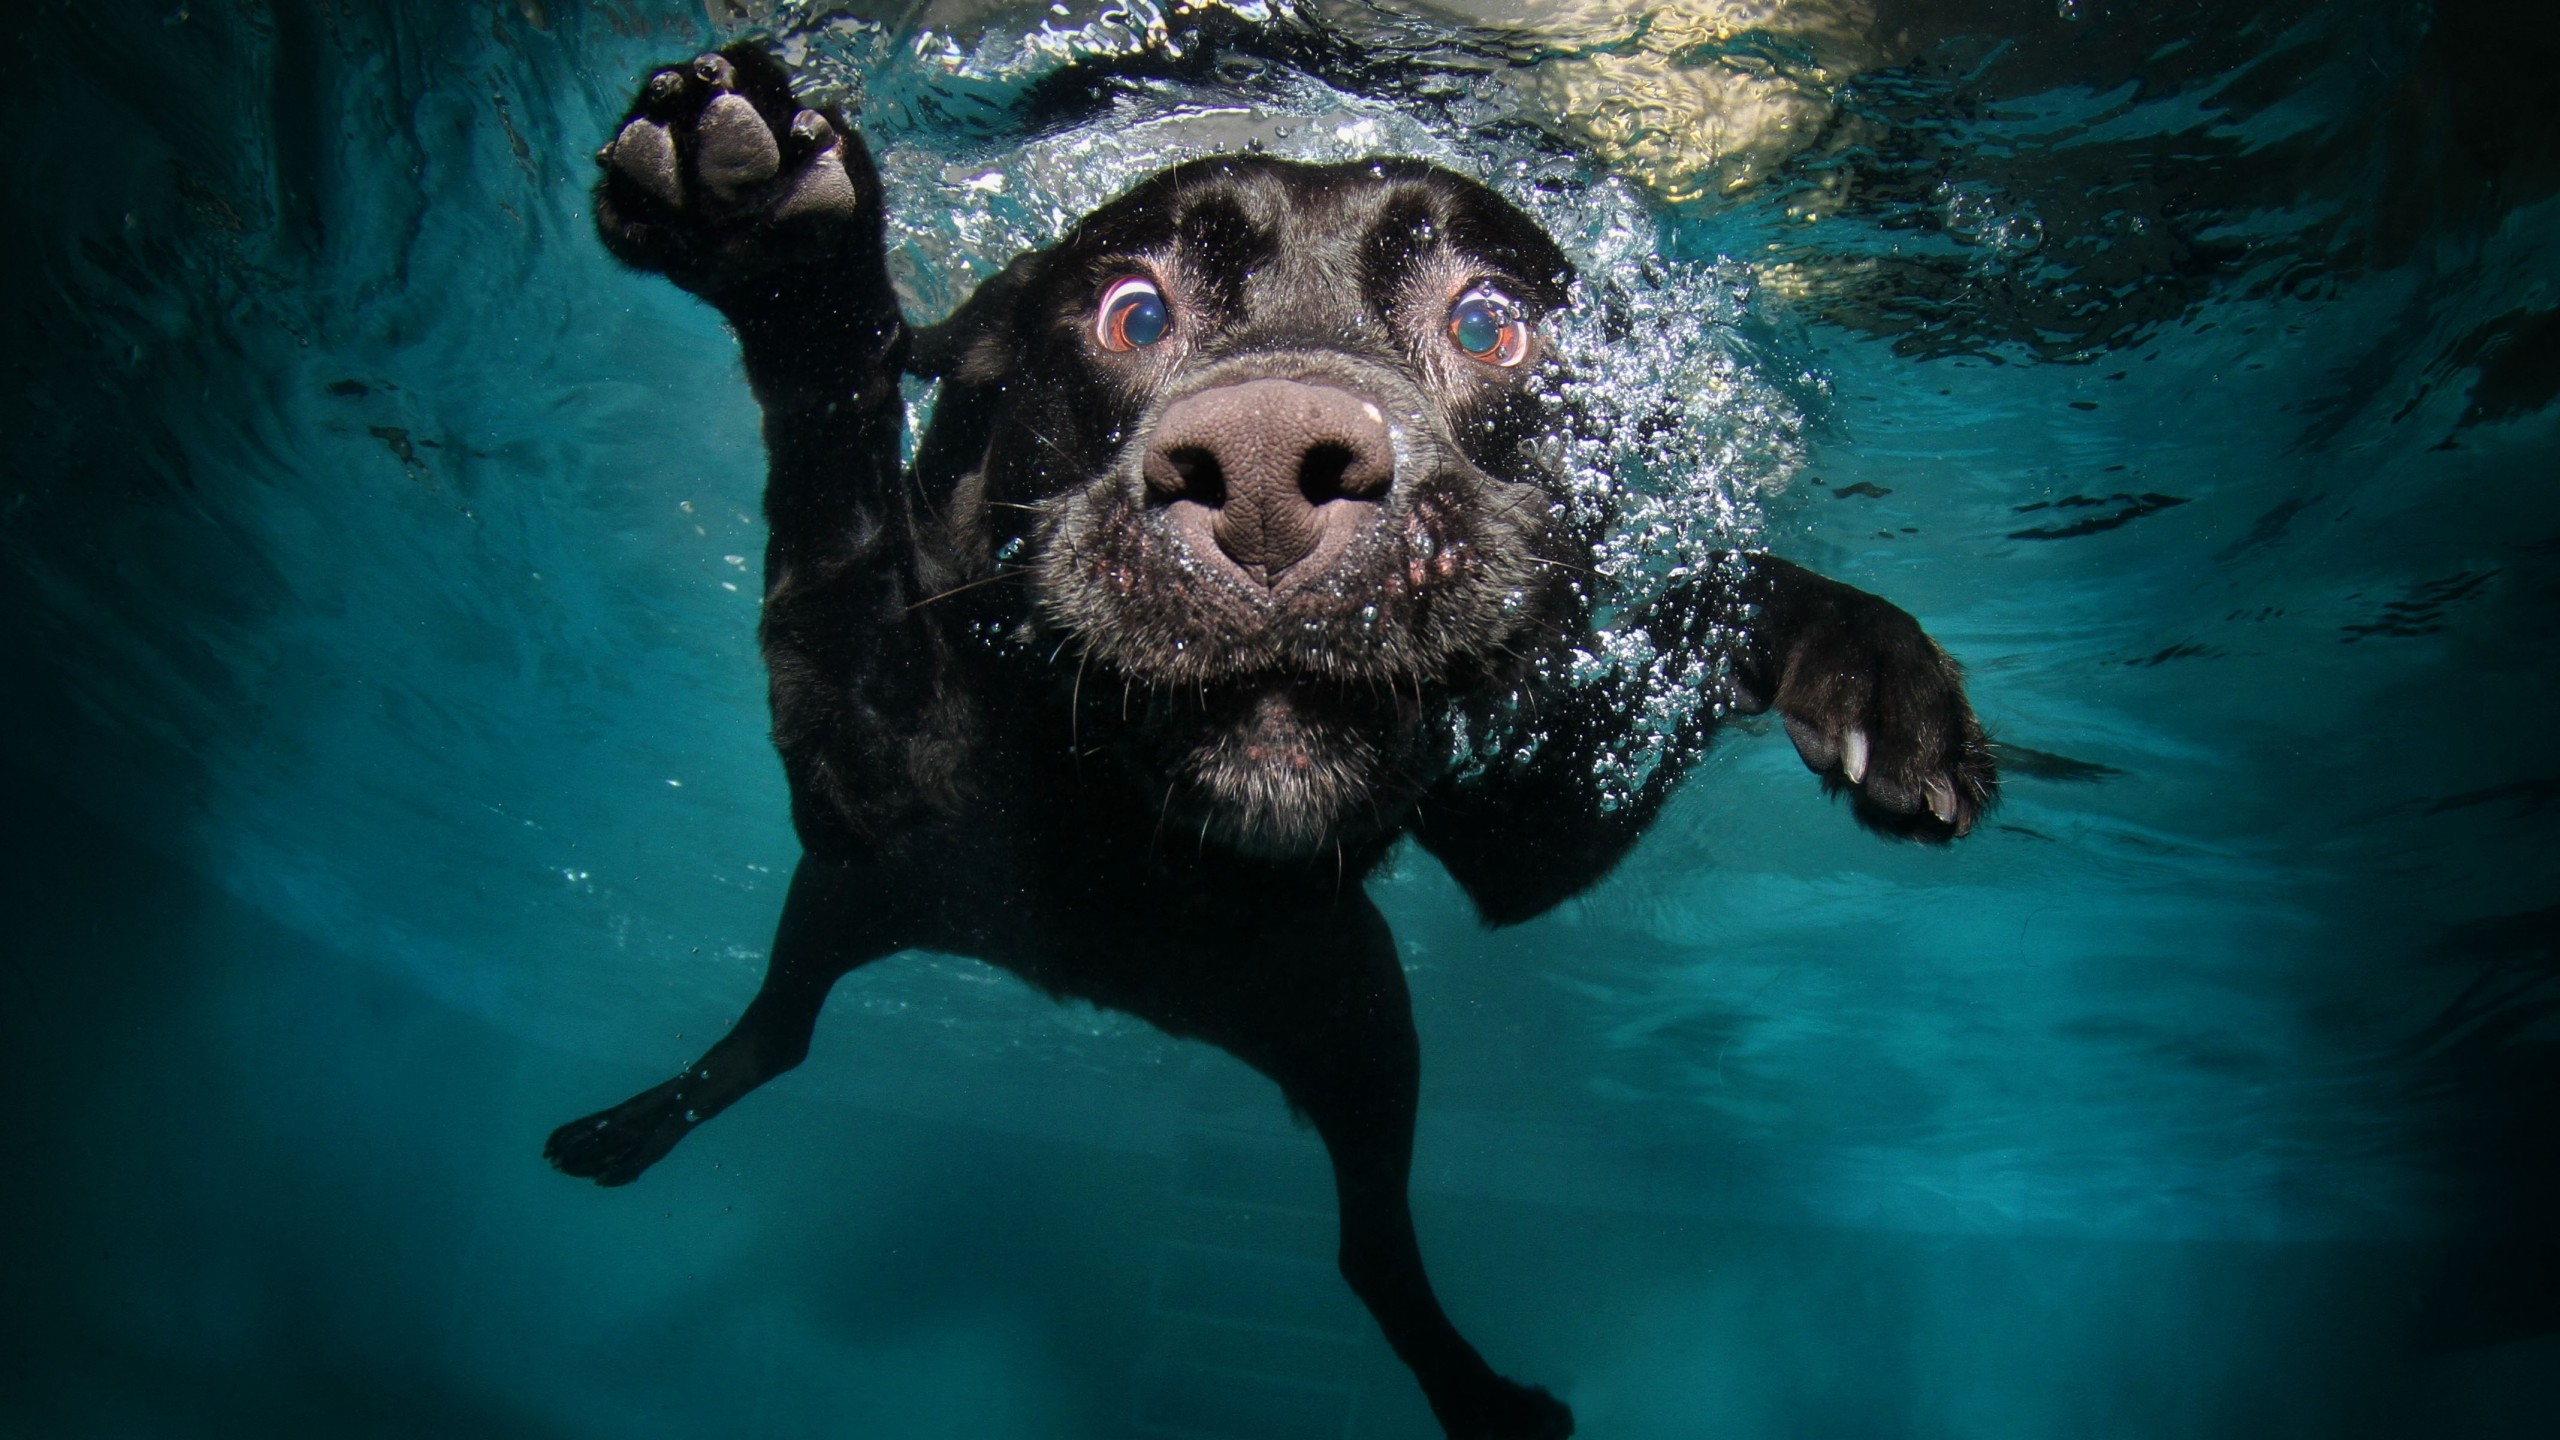 Wallpaper Dog 5k 4k Wallpaper Puppy Black Underwater Funny Animal Pet Water Bubbles Os 1533